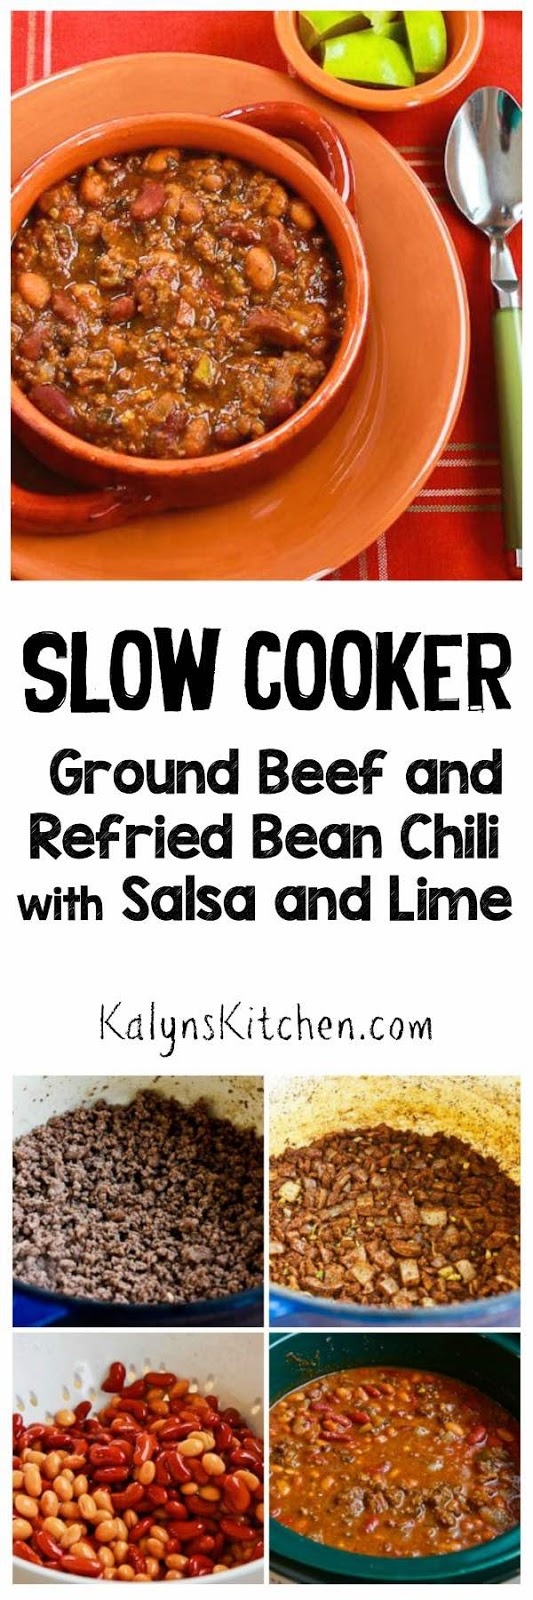 Slow Cooker Ground Beef and Refried Bean Chili with Salsa ...